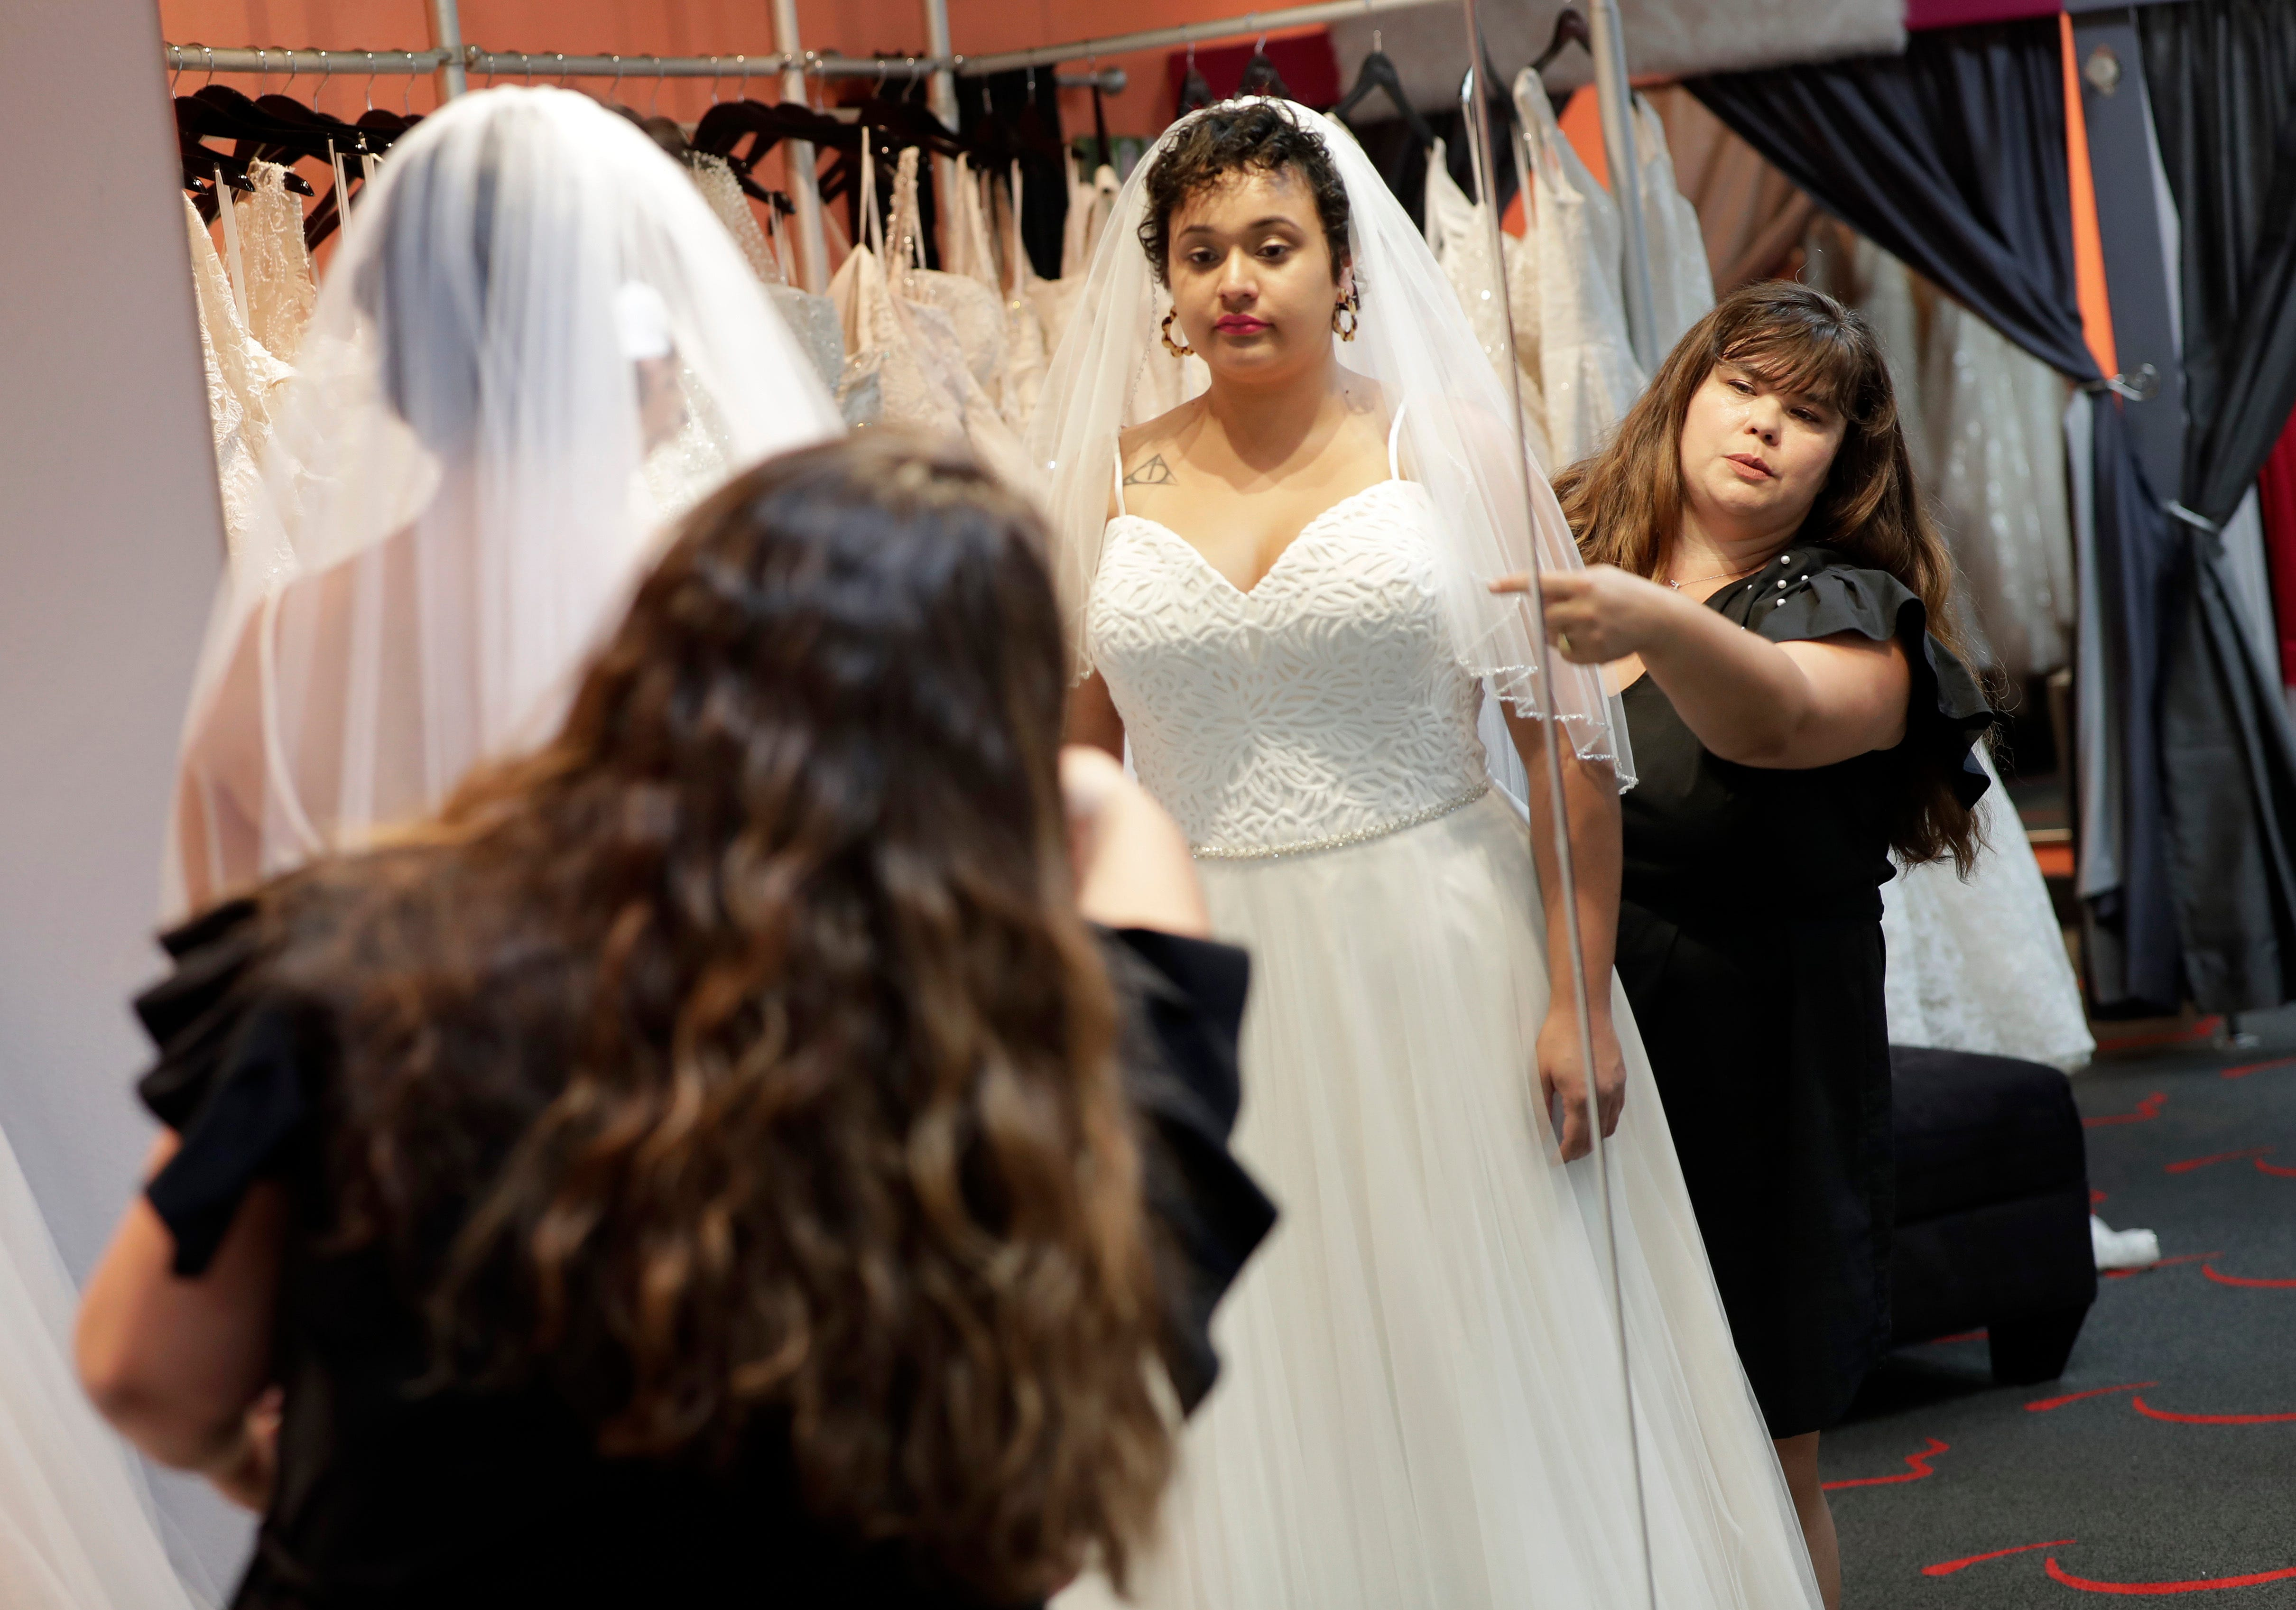 Online wedding gown prices lower than local